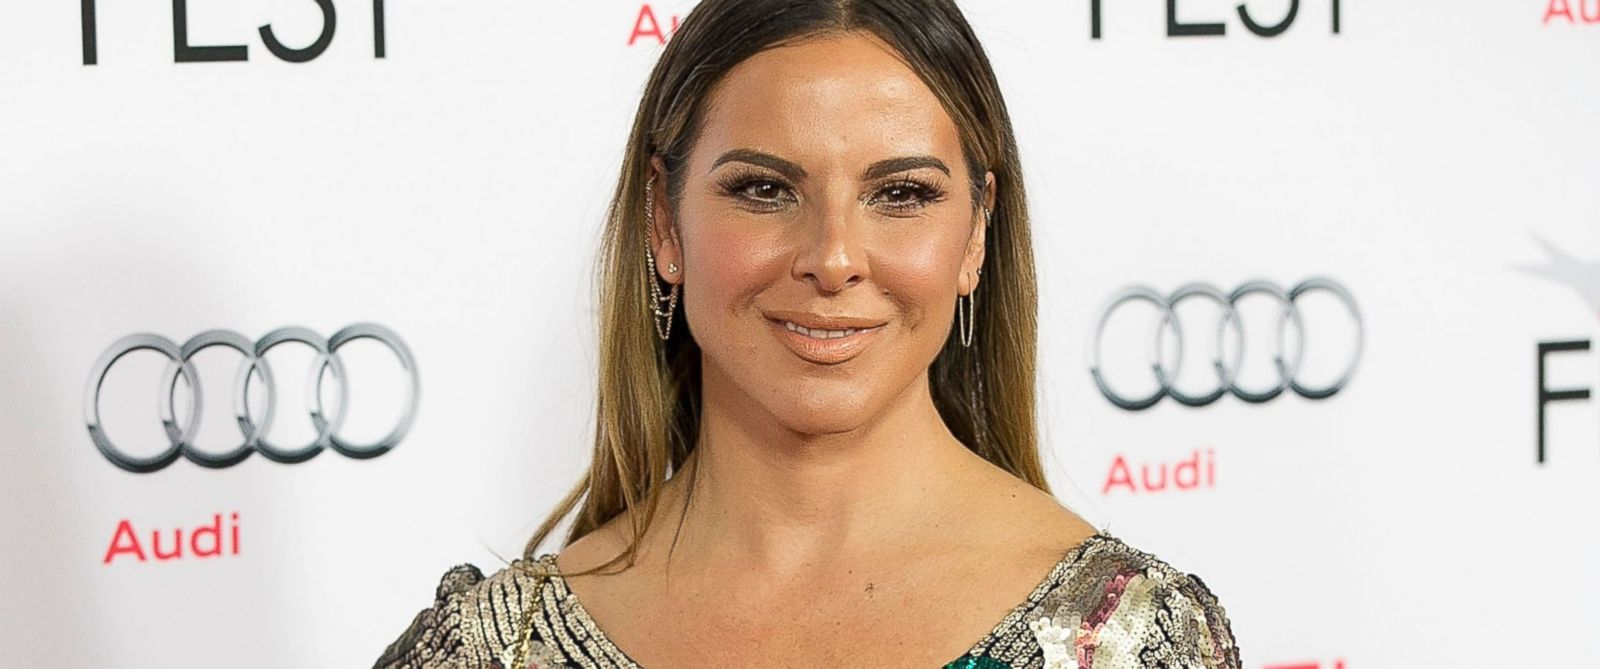 PHOTO: Kate del Castillo at TCL Chinese Theatre on Nov. 9, 2015 in Hollywood, Calif.